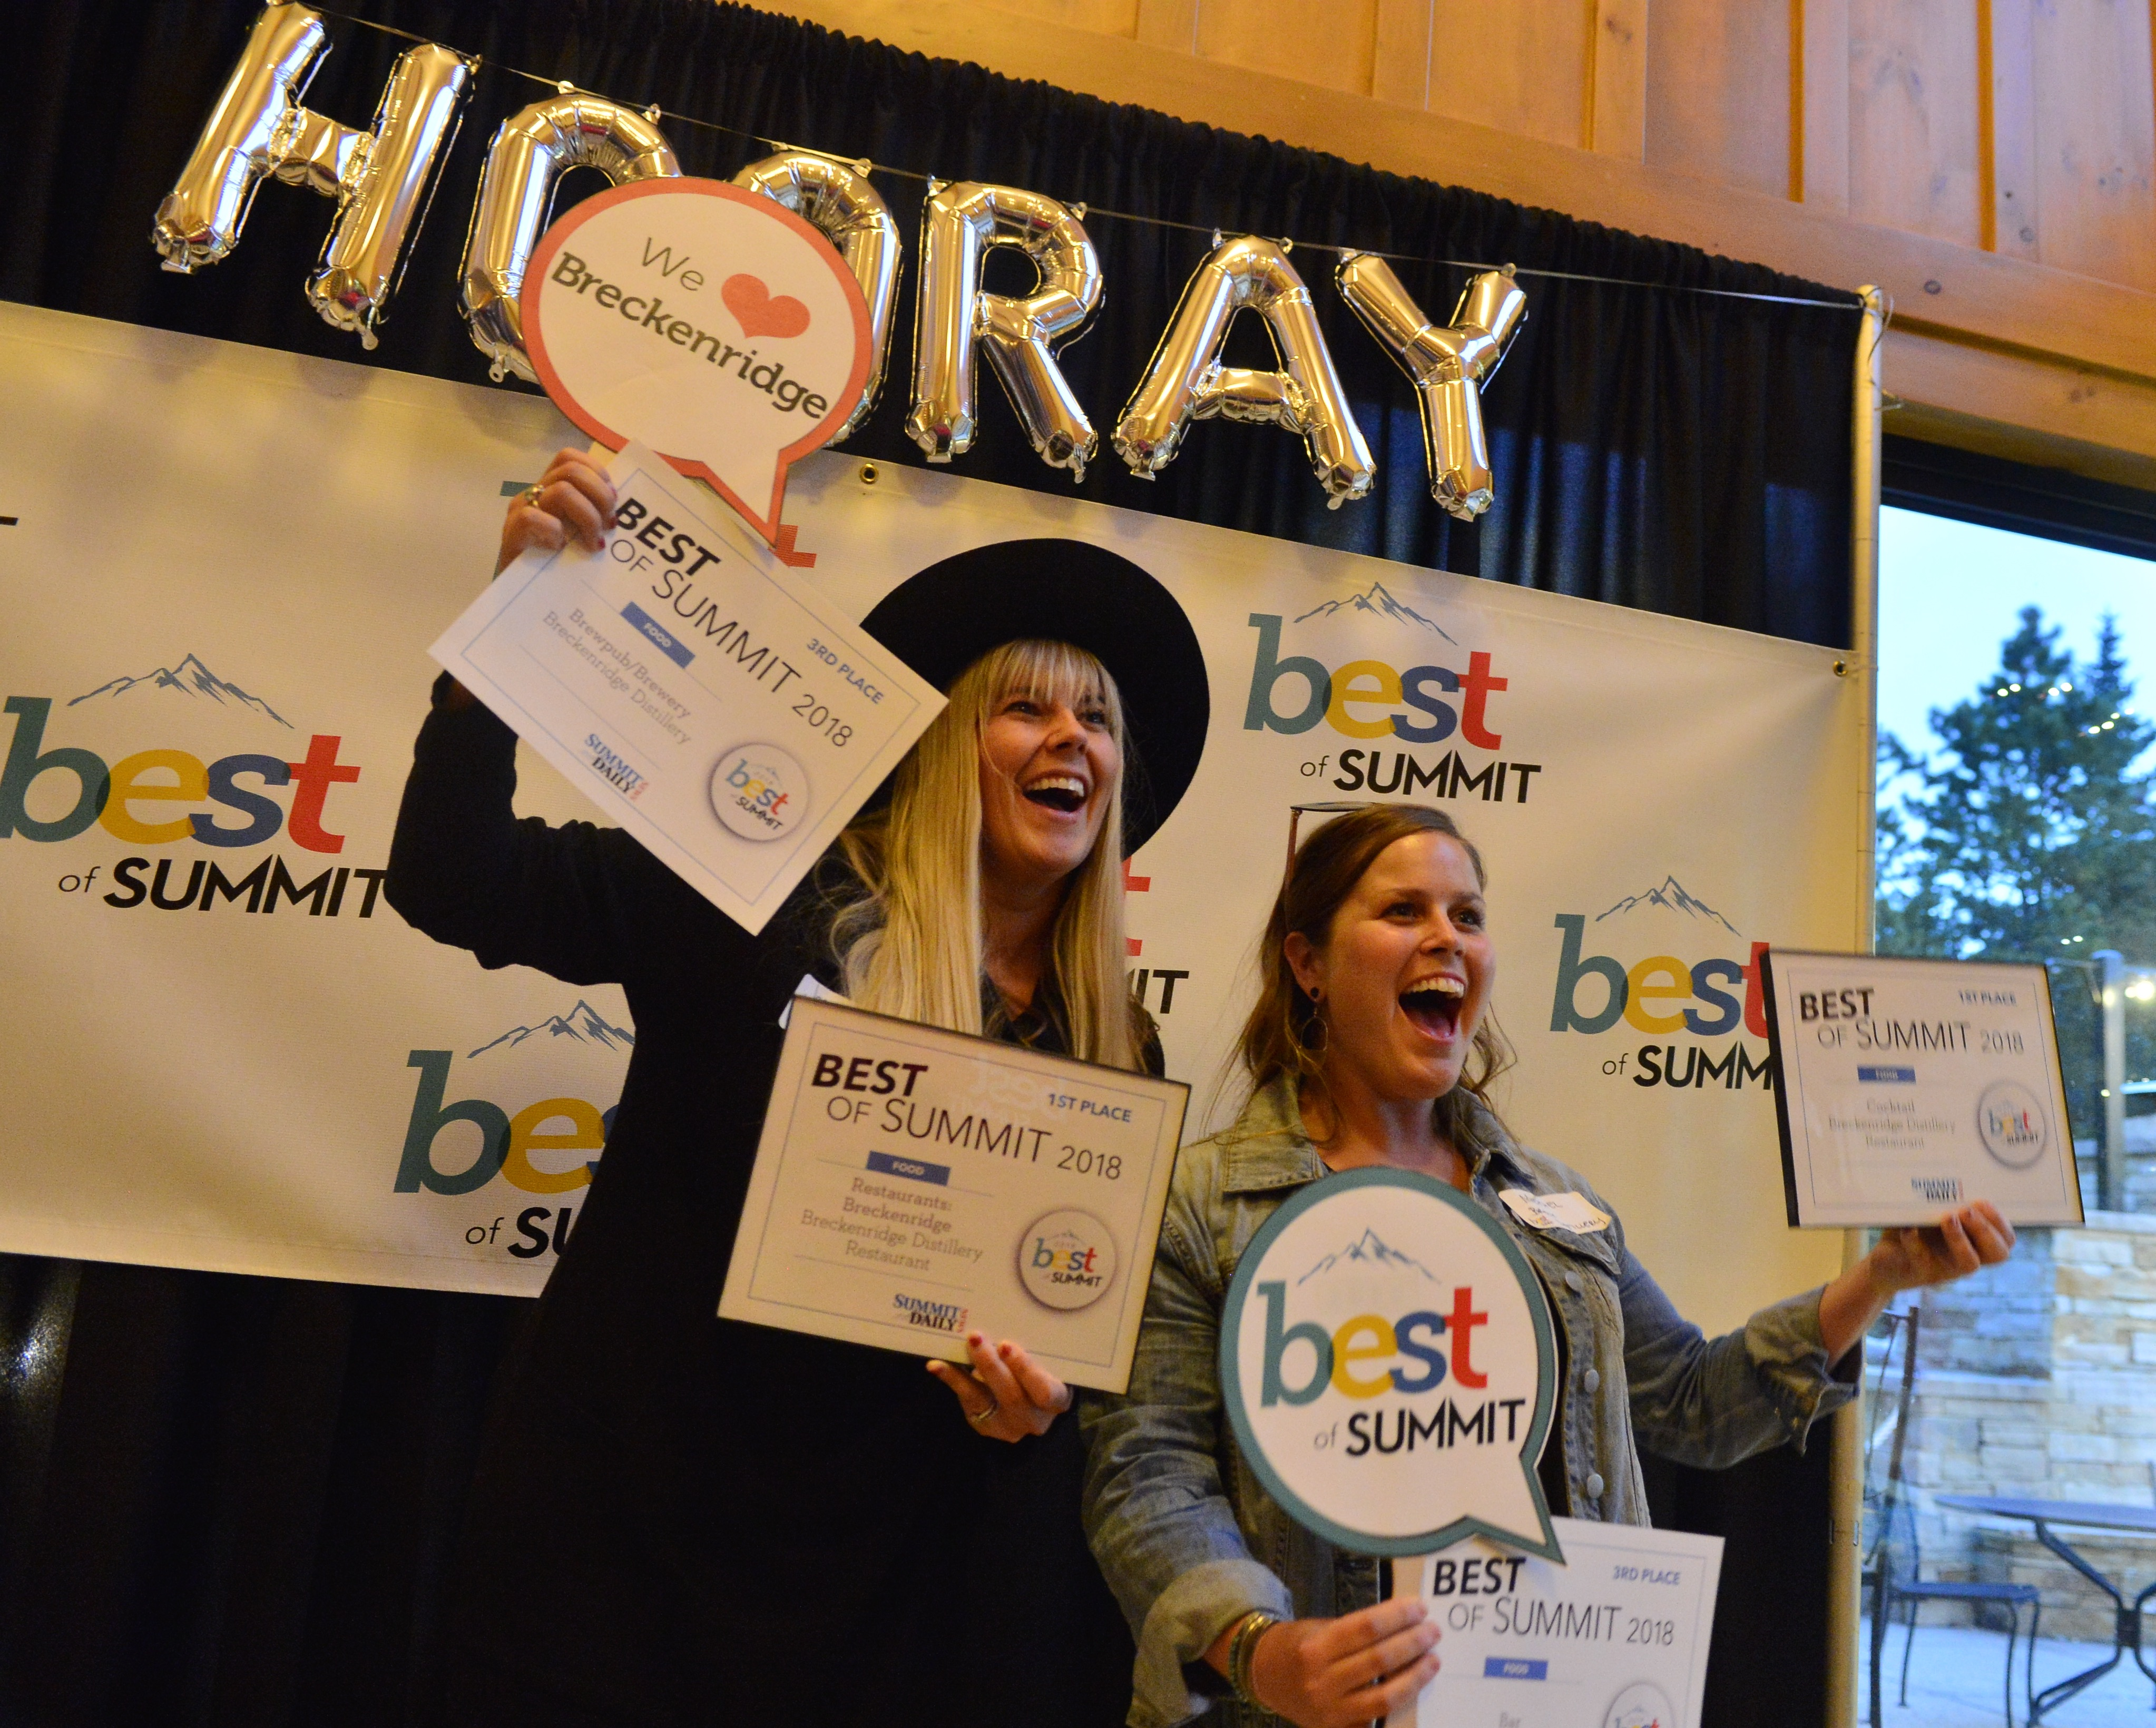 Summit Daily News announces the 2018 Best Of Summit awards (event photos, video)